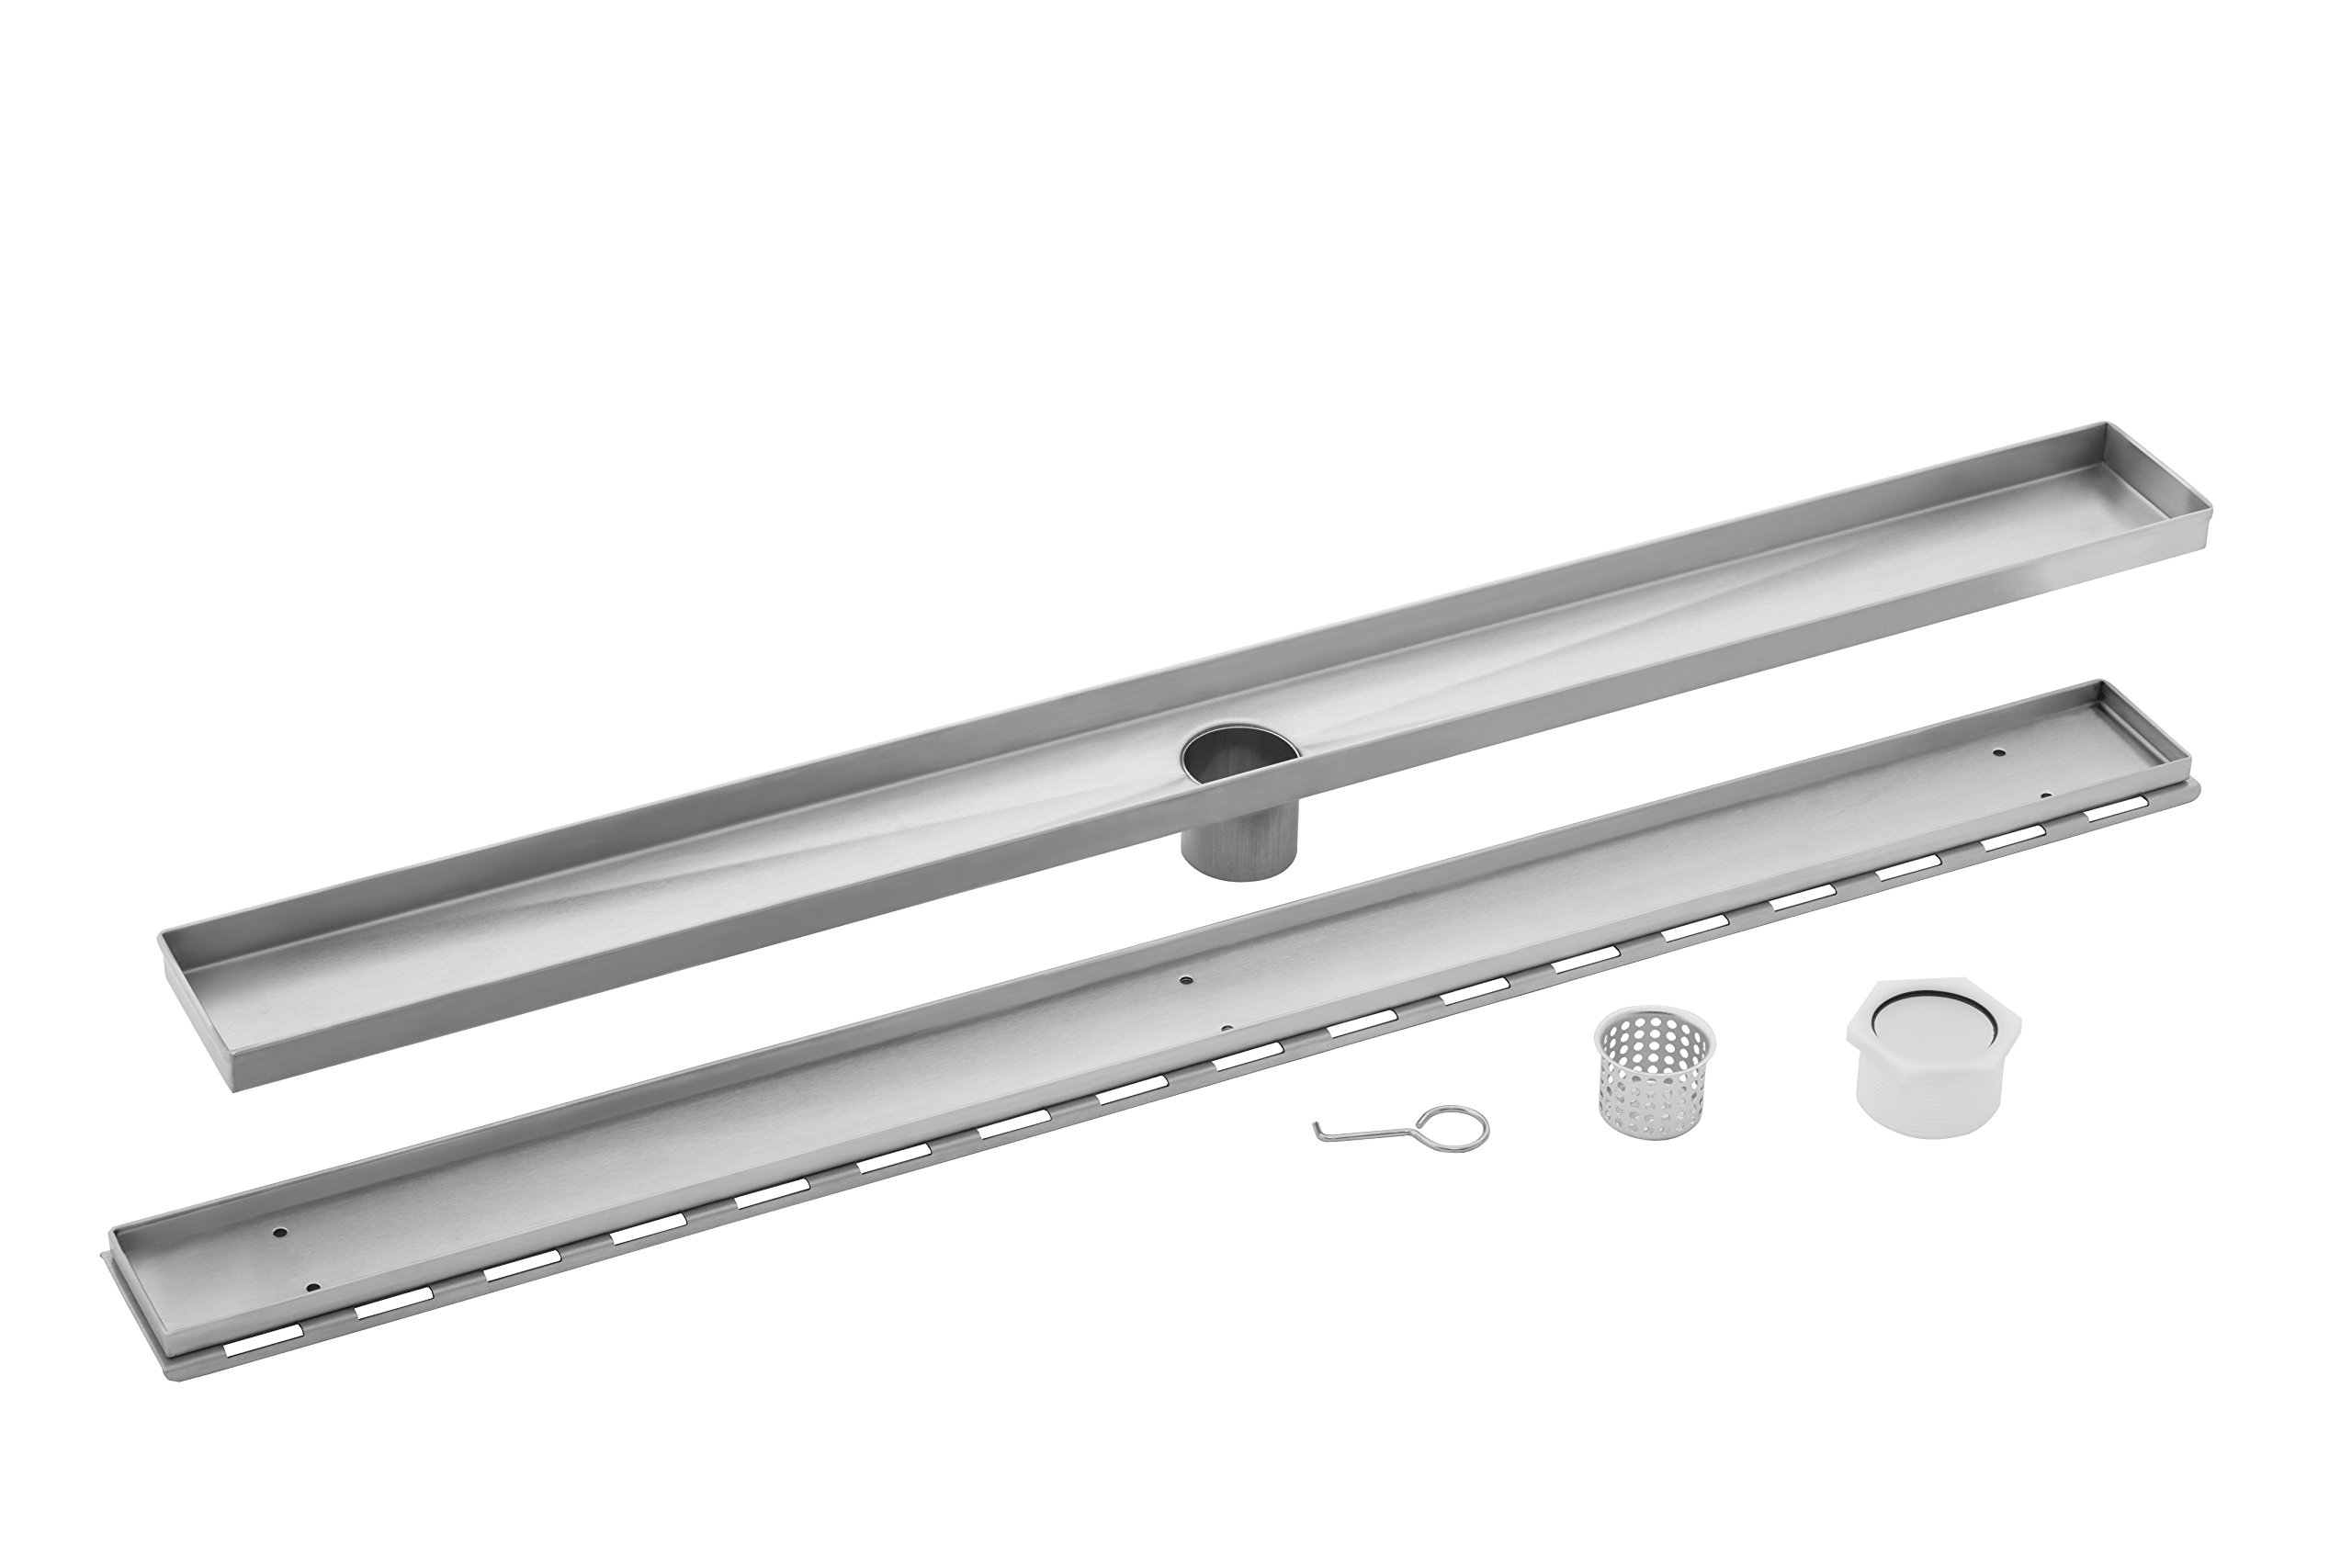 MSLD-TI36 36-in Linear Shower Drain with Tile Insert by Magnus Sinks